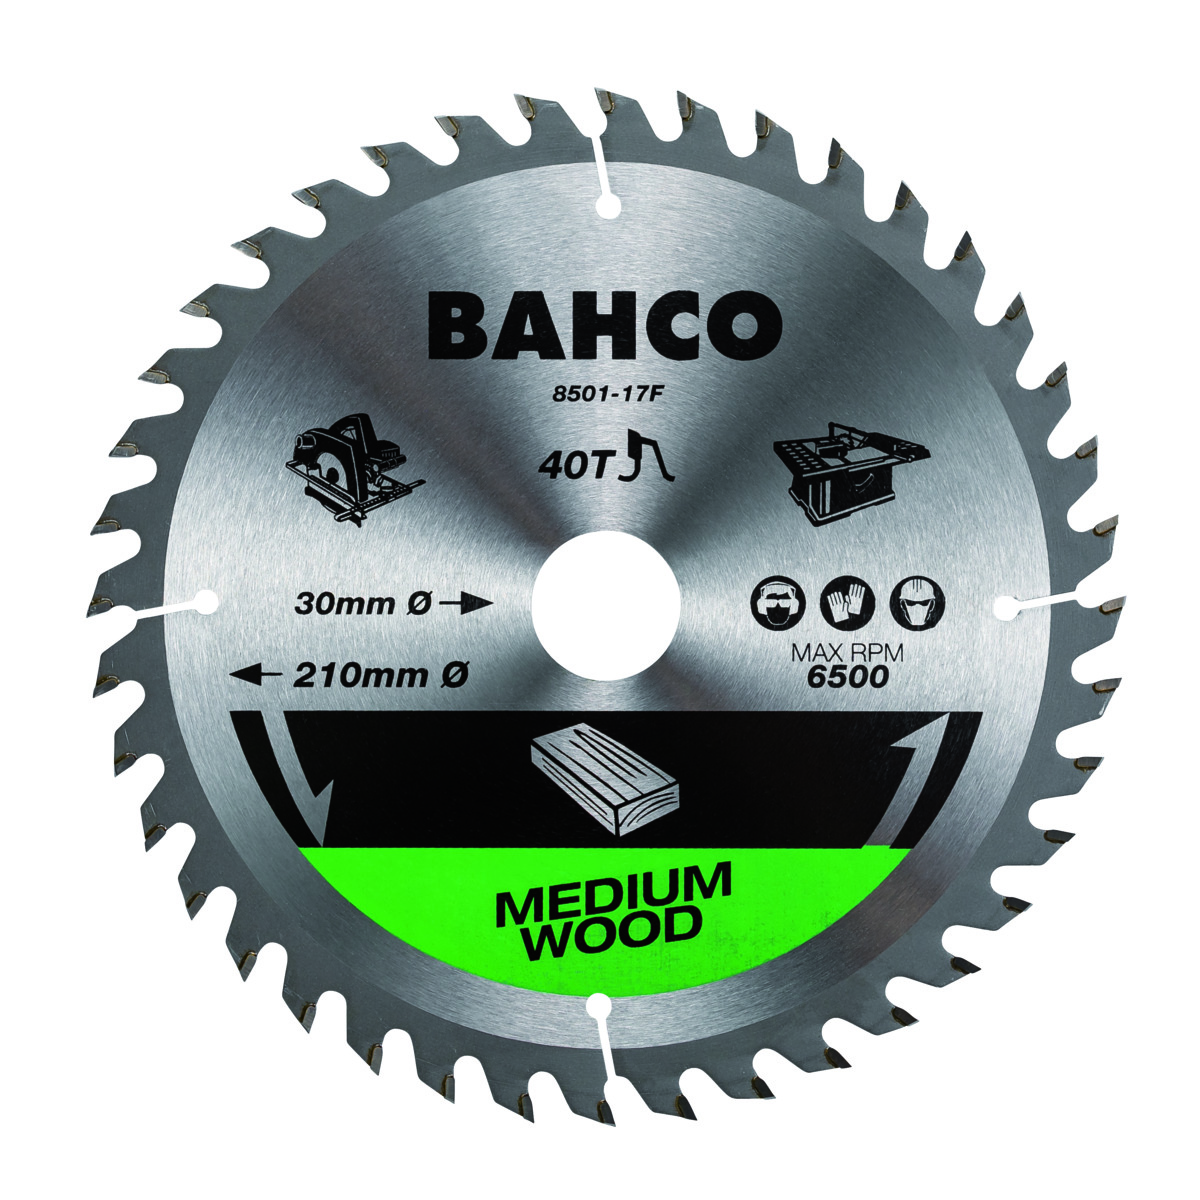 Circular saw blade for cordless saw machines 184x16mm 40T for wood